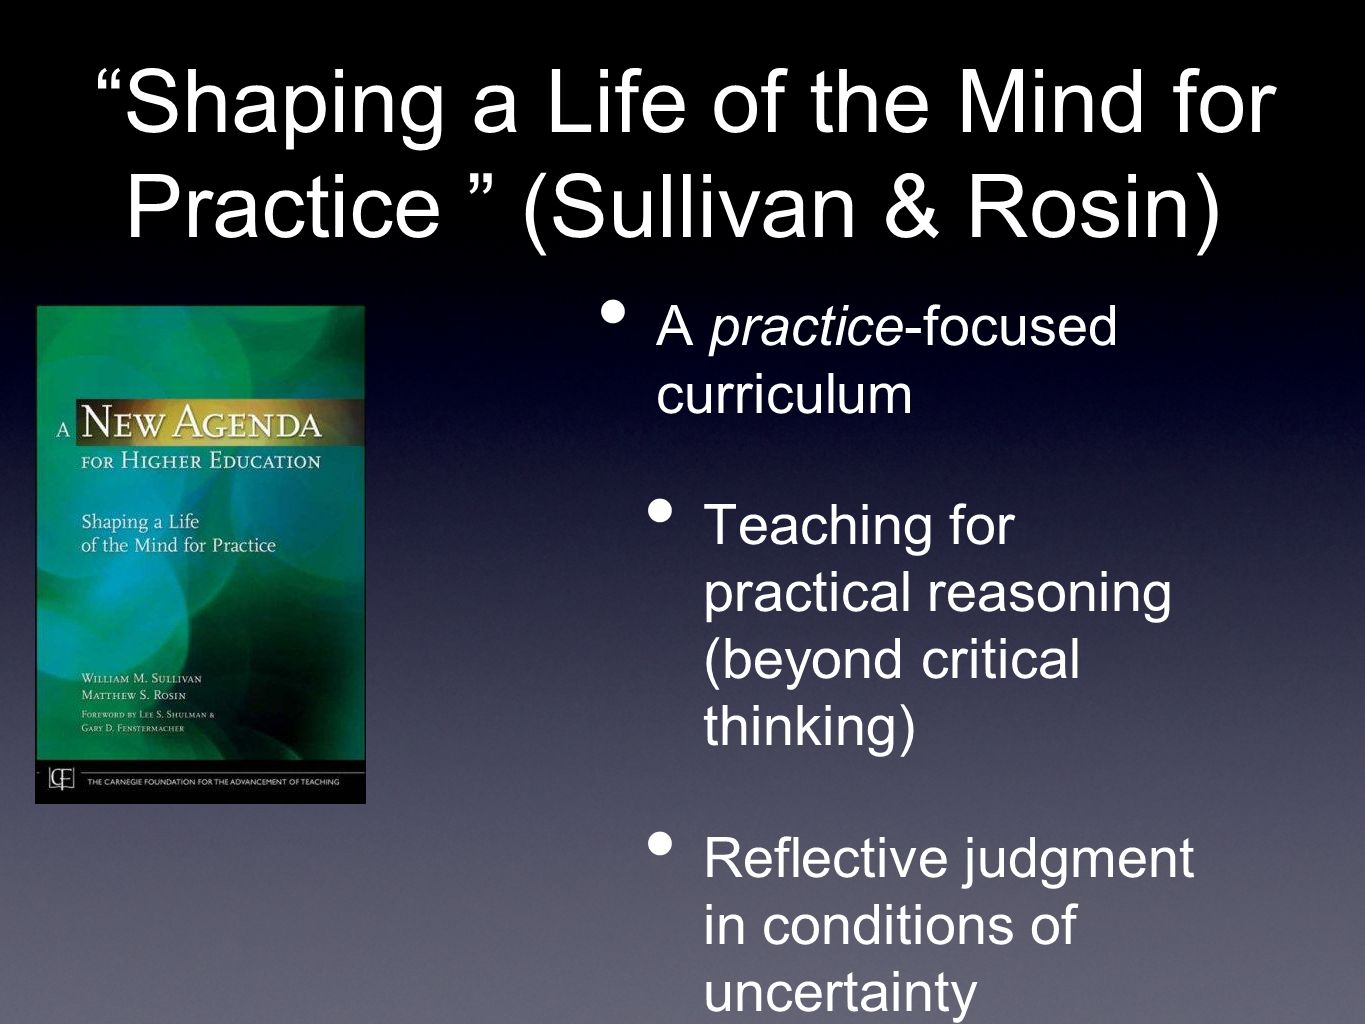 Shaping a Life of the Mind for Practice (Sullivan & Rosin) A practice-focused curriculum Teaching for practical reasoning (beyond critical thinking) Reflective judgment in conditions of uncertainty